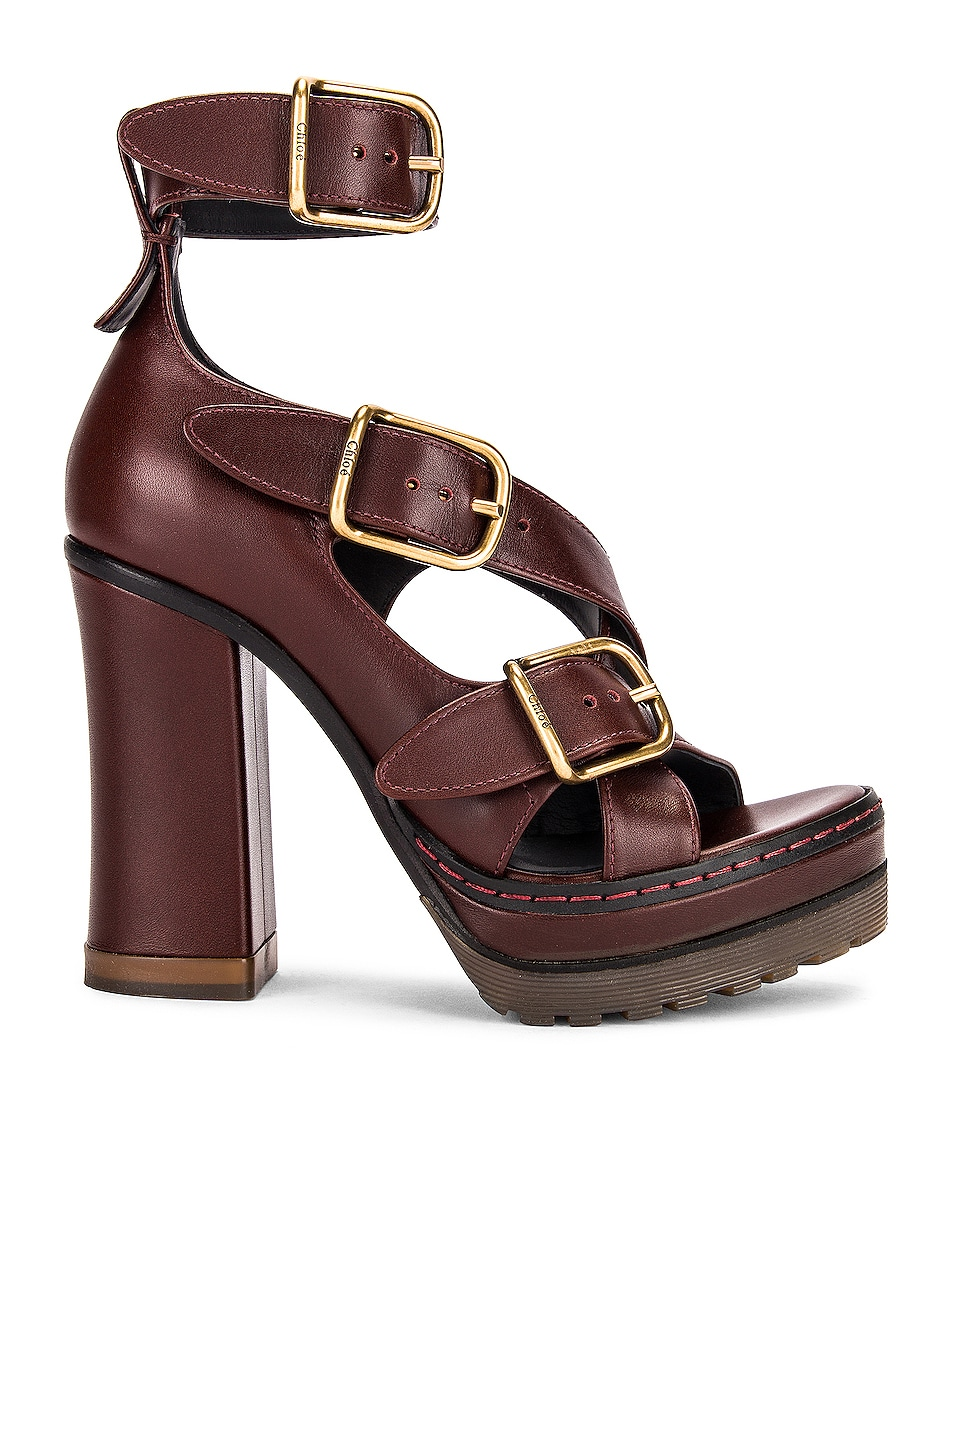 Image 1 of Chloe Daisy Platform Sandals in Hot Tan